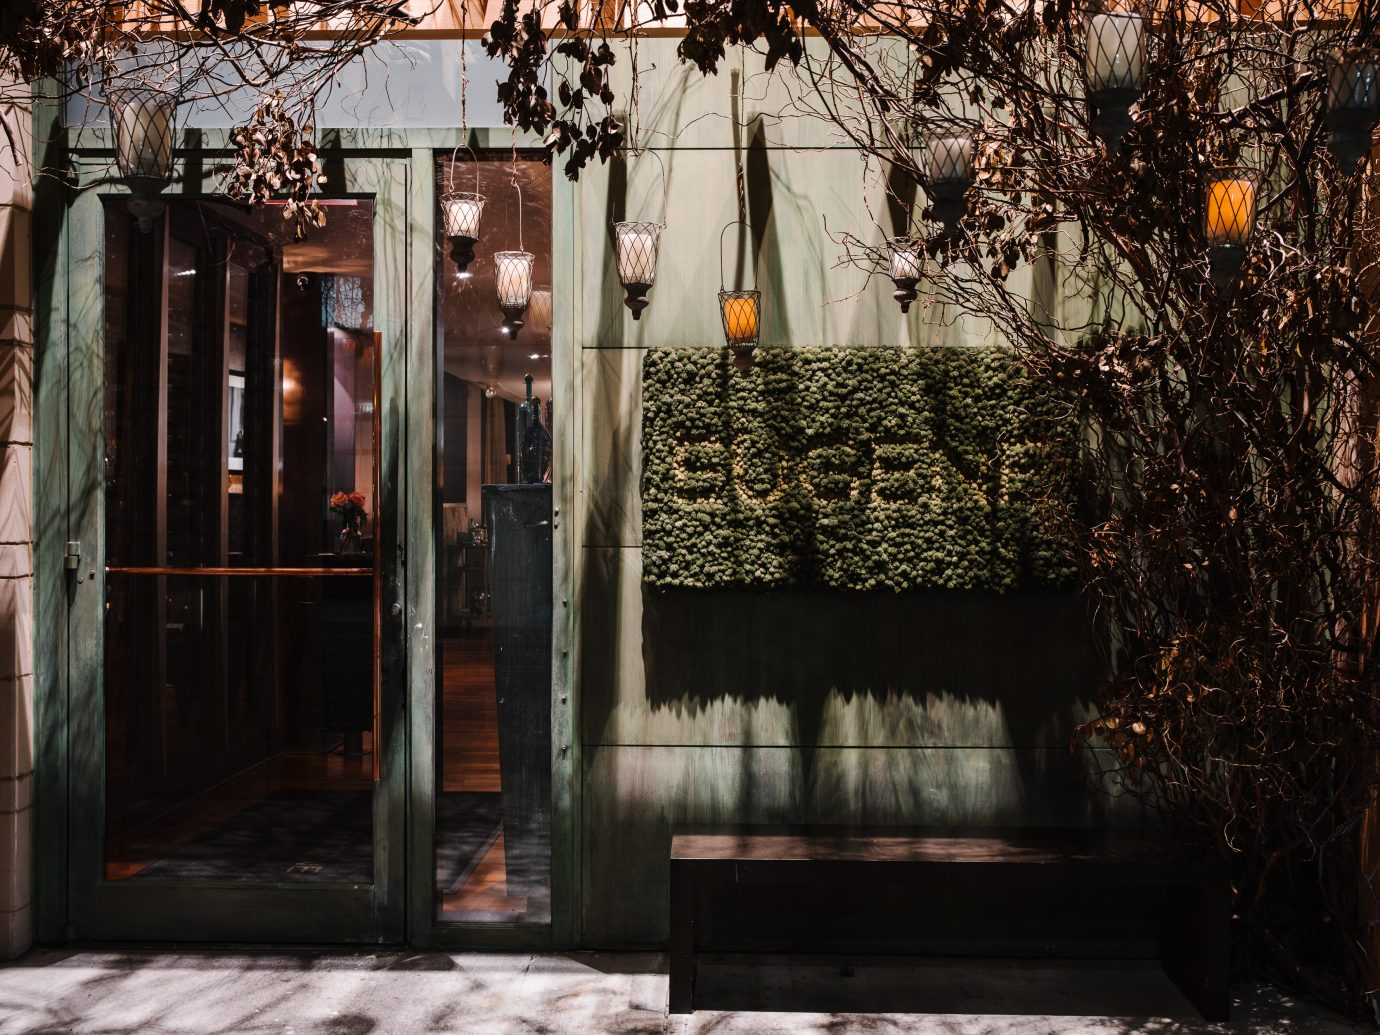 Exterior of Restaurant Eugene with a green plant sign